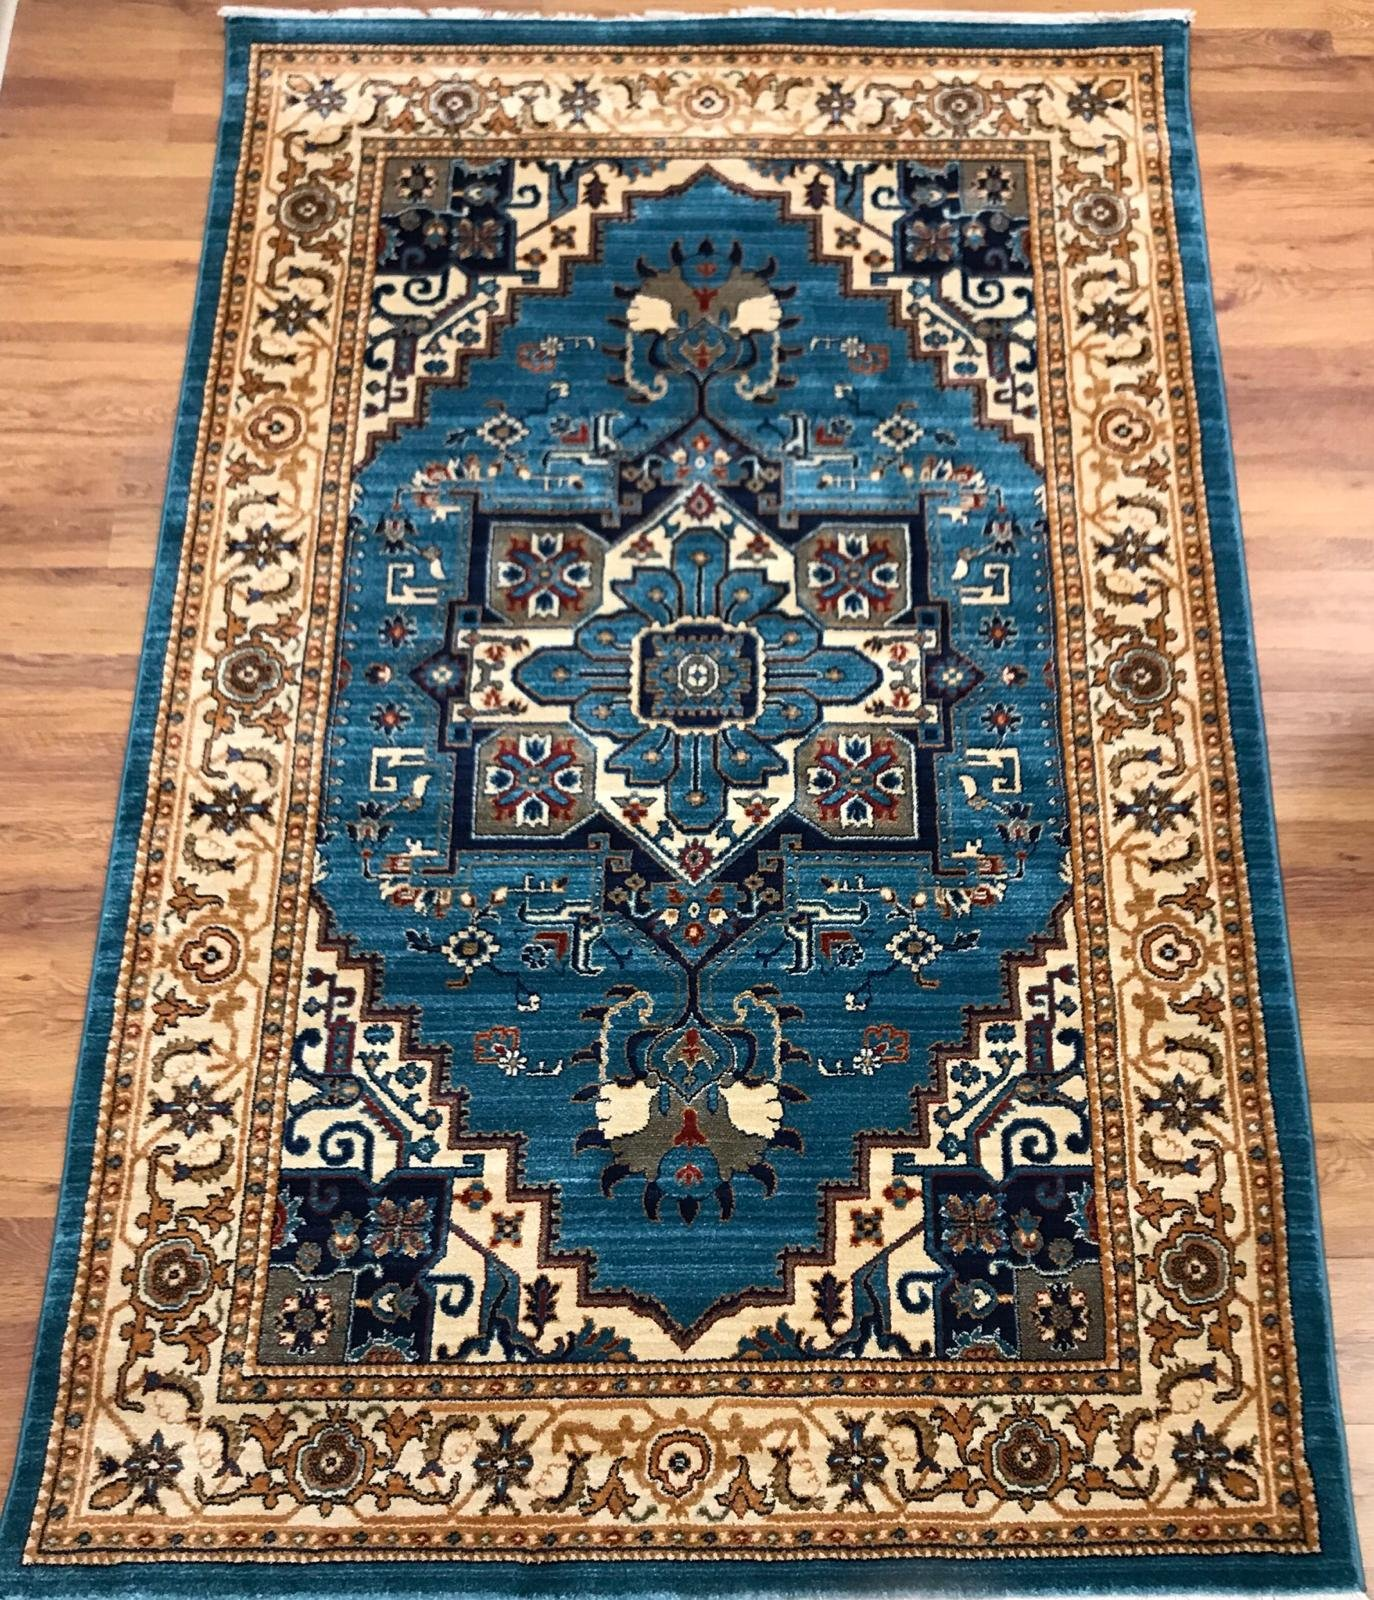 Antep Rugs ORIENTAL Collection TEBRIZ Oriental Polypropylene Area Rug (BLUE/IVORY, 8' X 10') by Antep Rugs